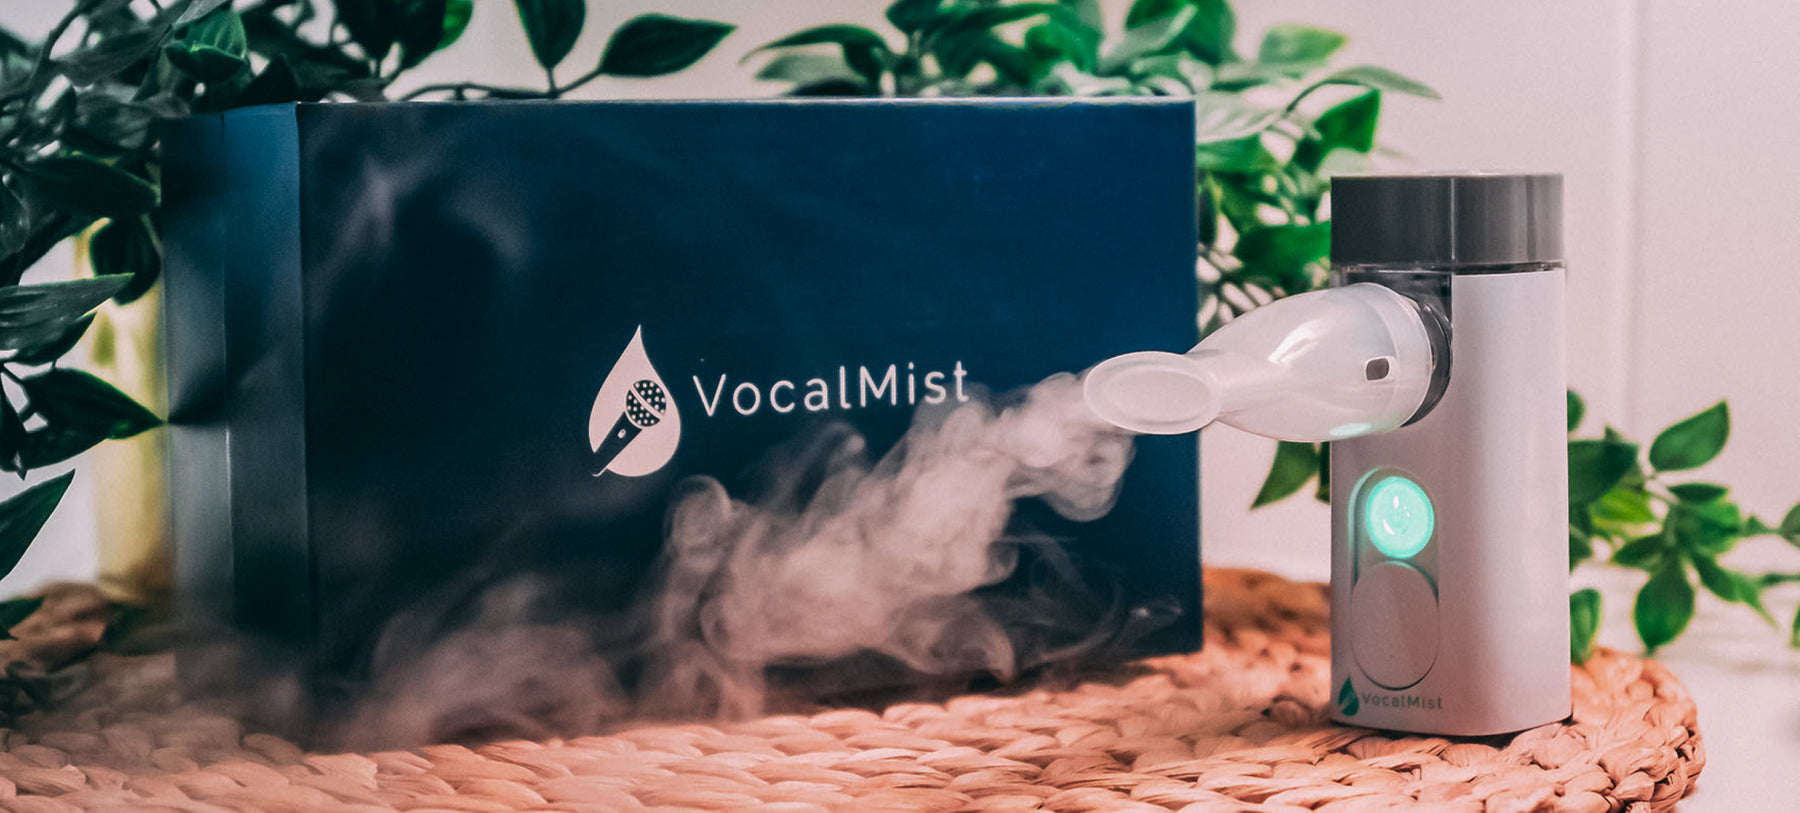 VocalMist Ready to use